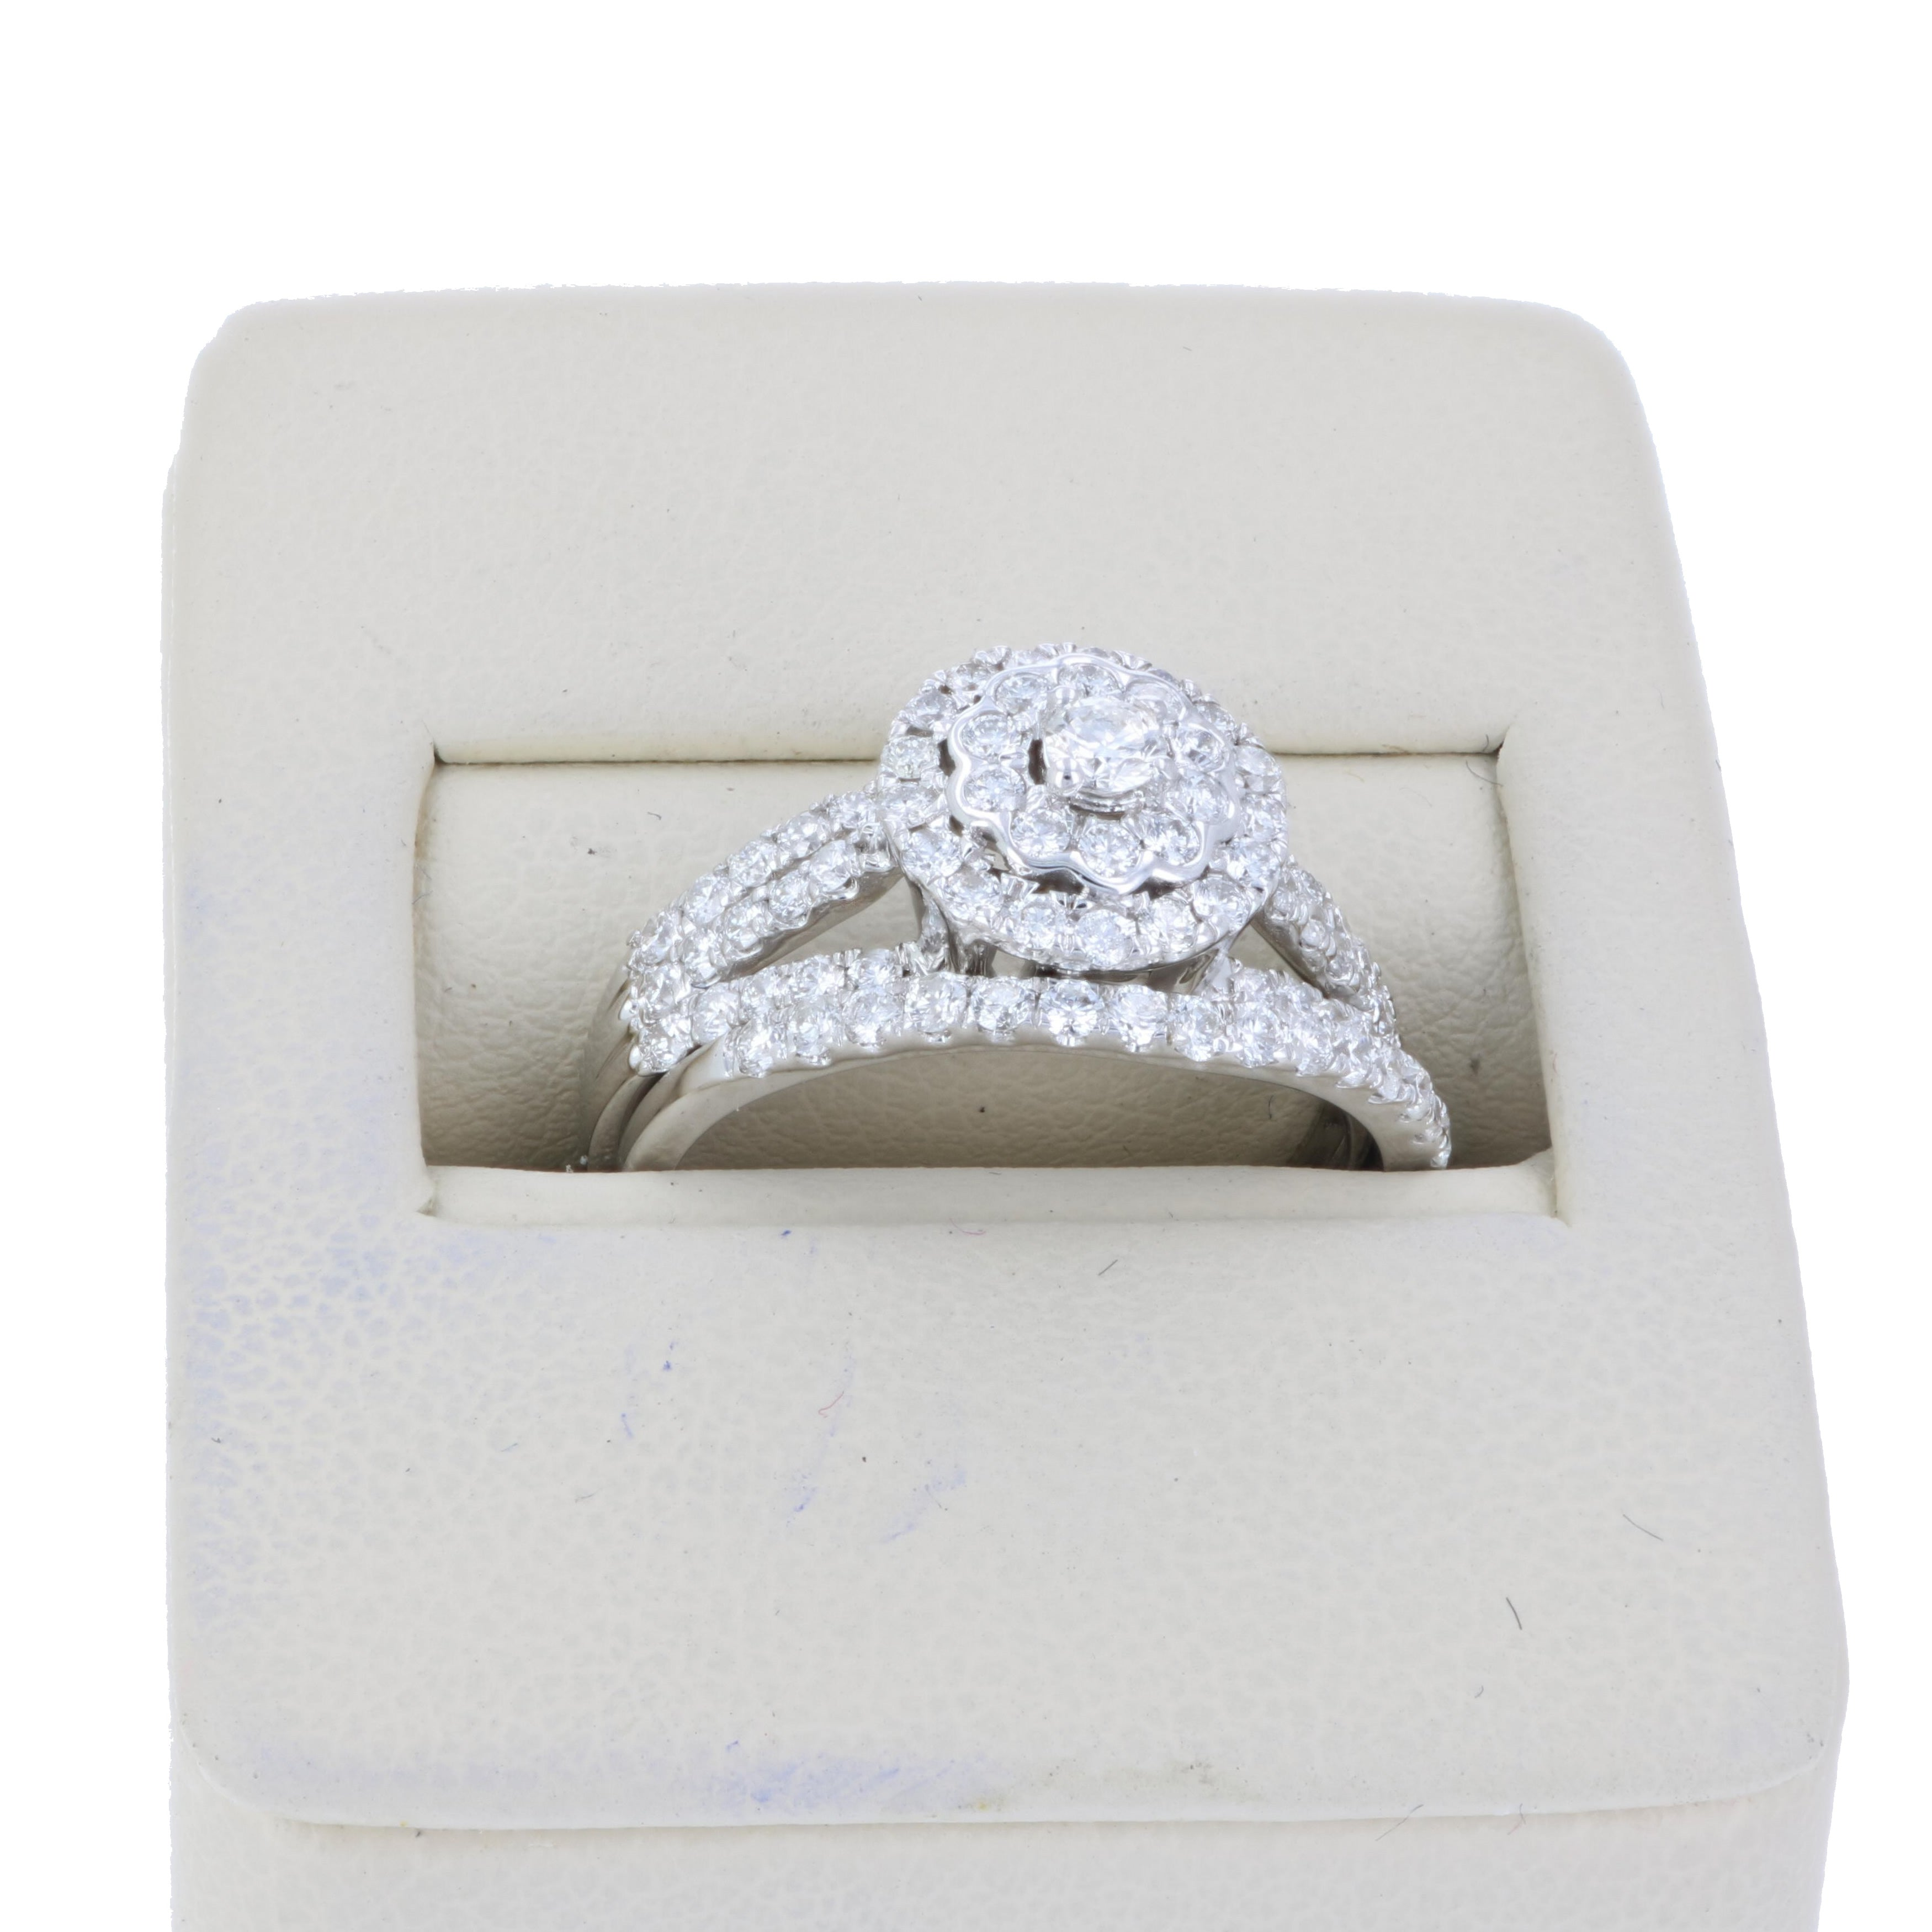 78 CT Diamond Prong Set Flower Wedding Engagement Ring Set 14K Gold